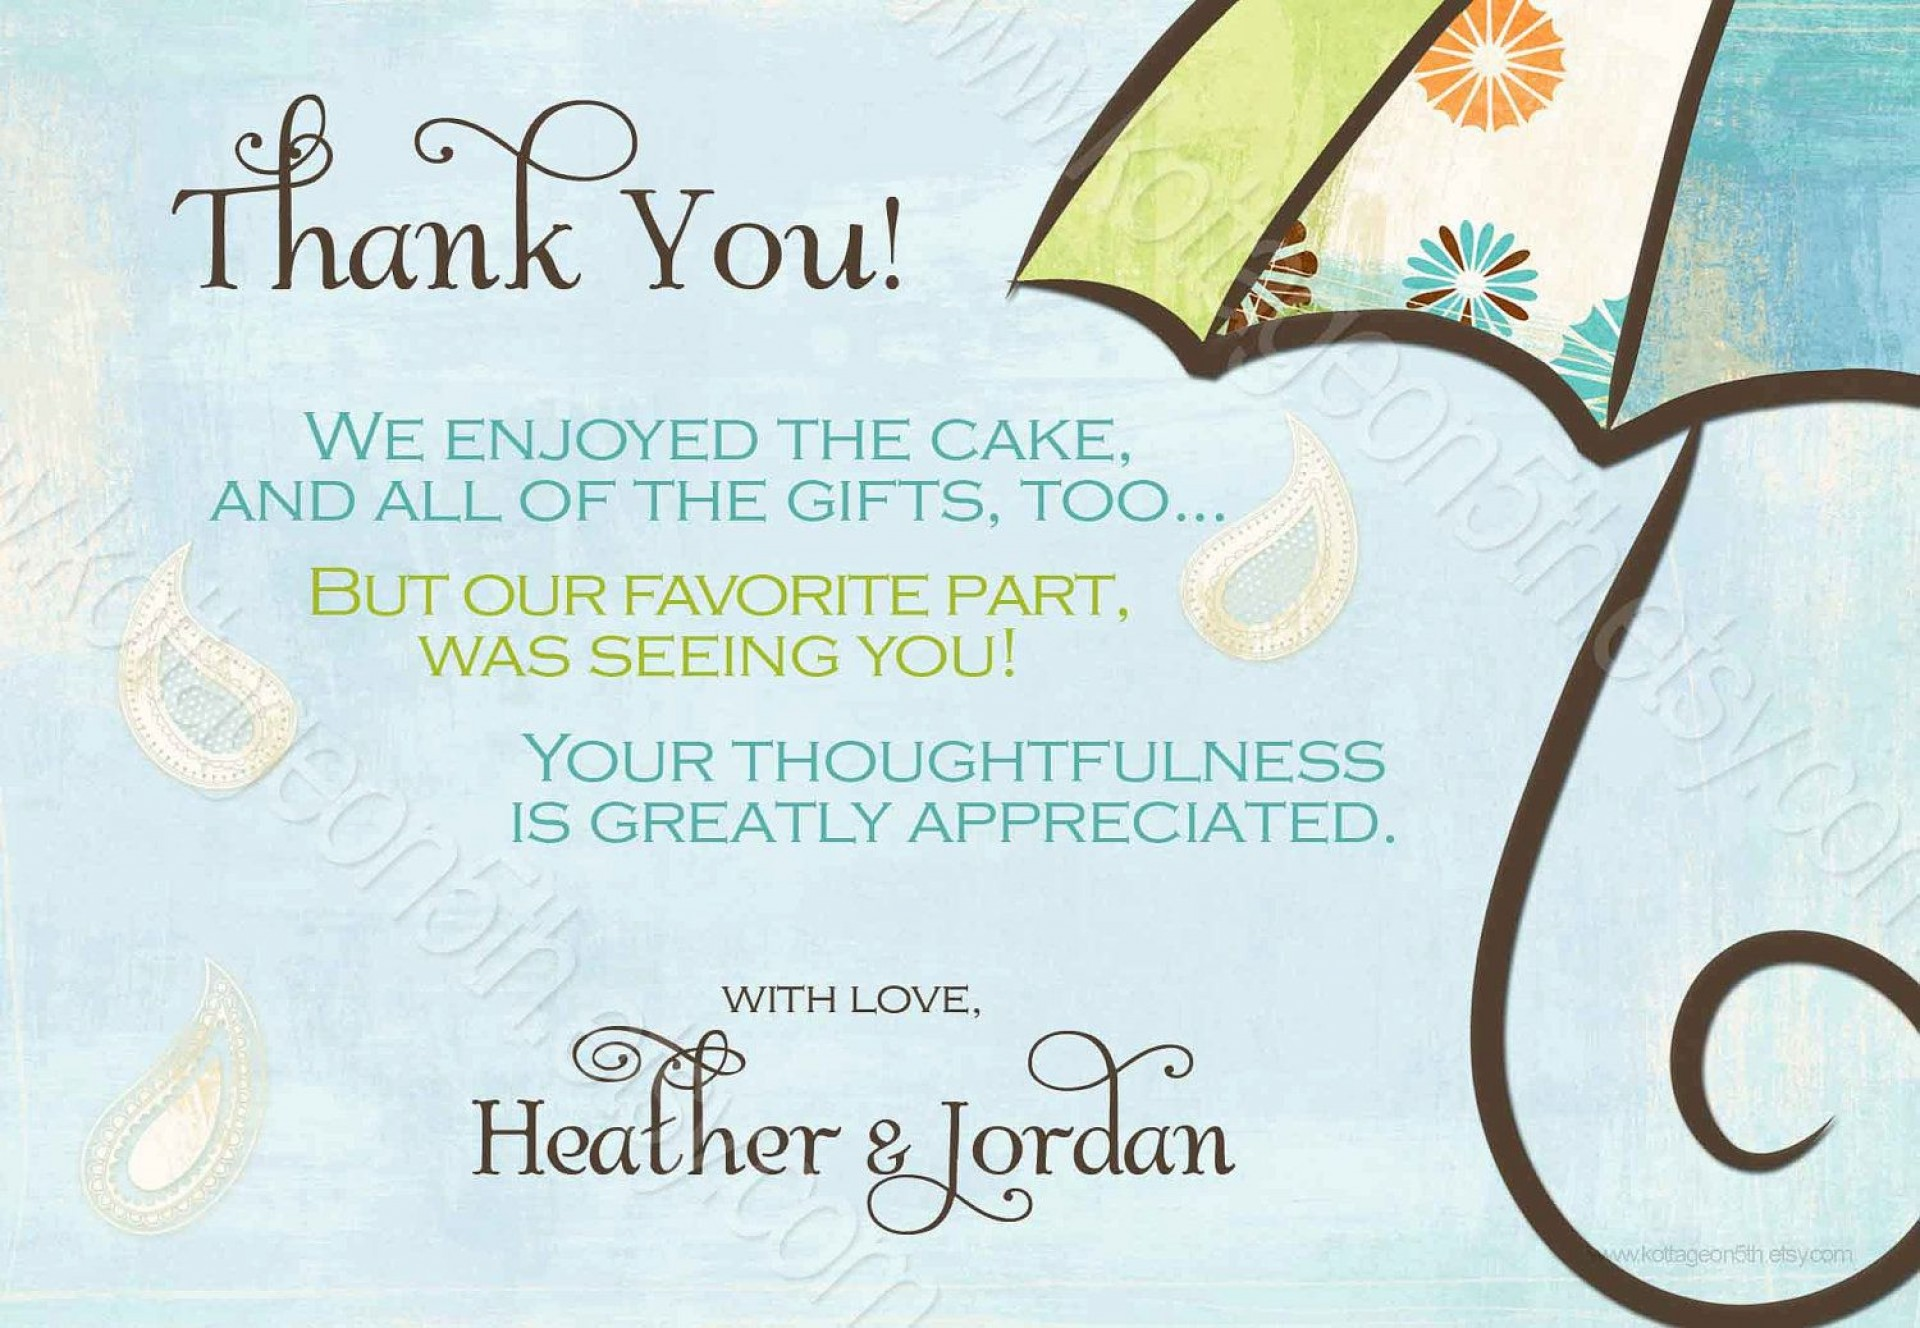 009 Shocking Thank You Note Wording Baby Shower Picture  For Hosting Card1920